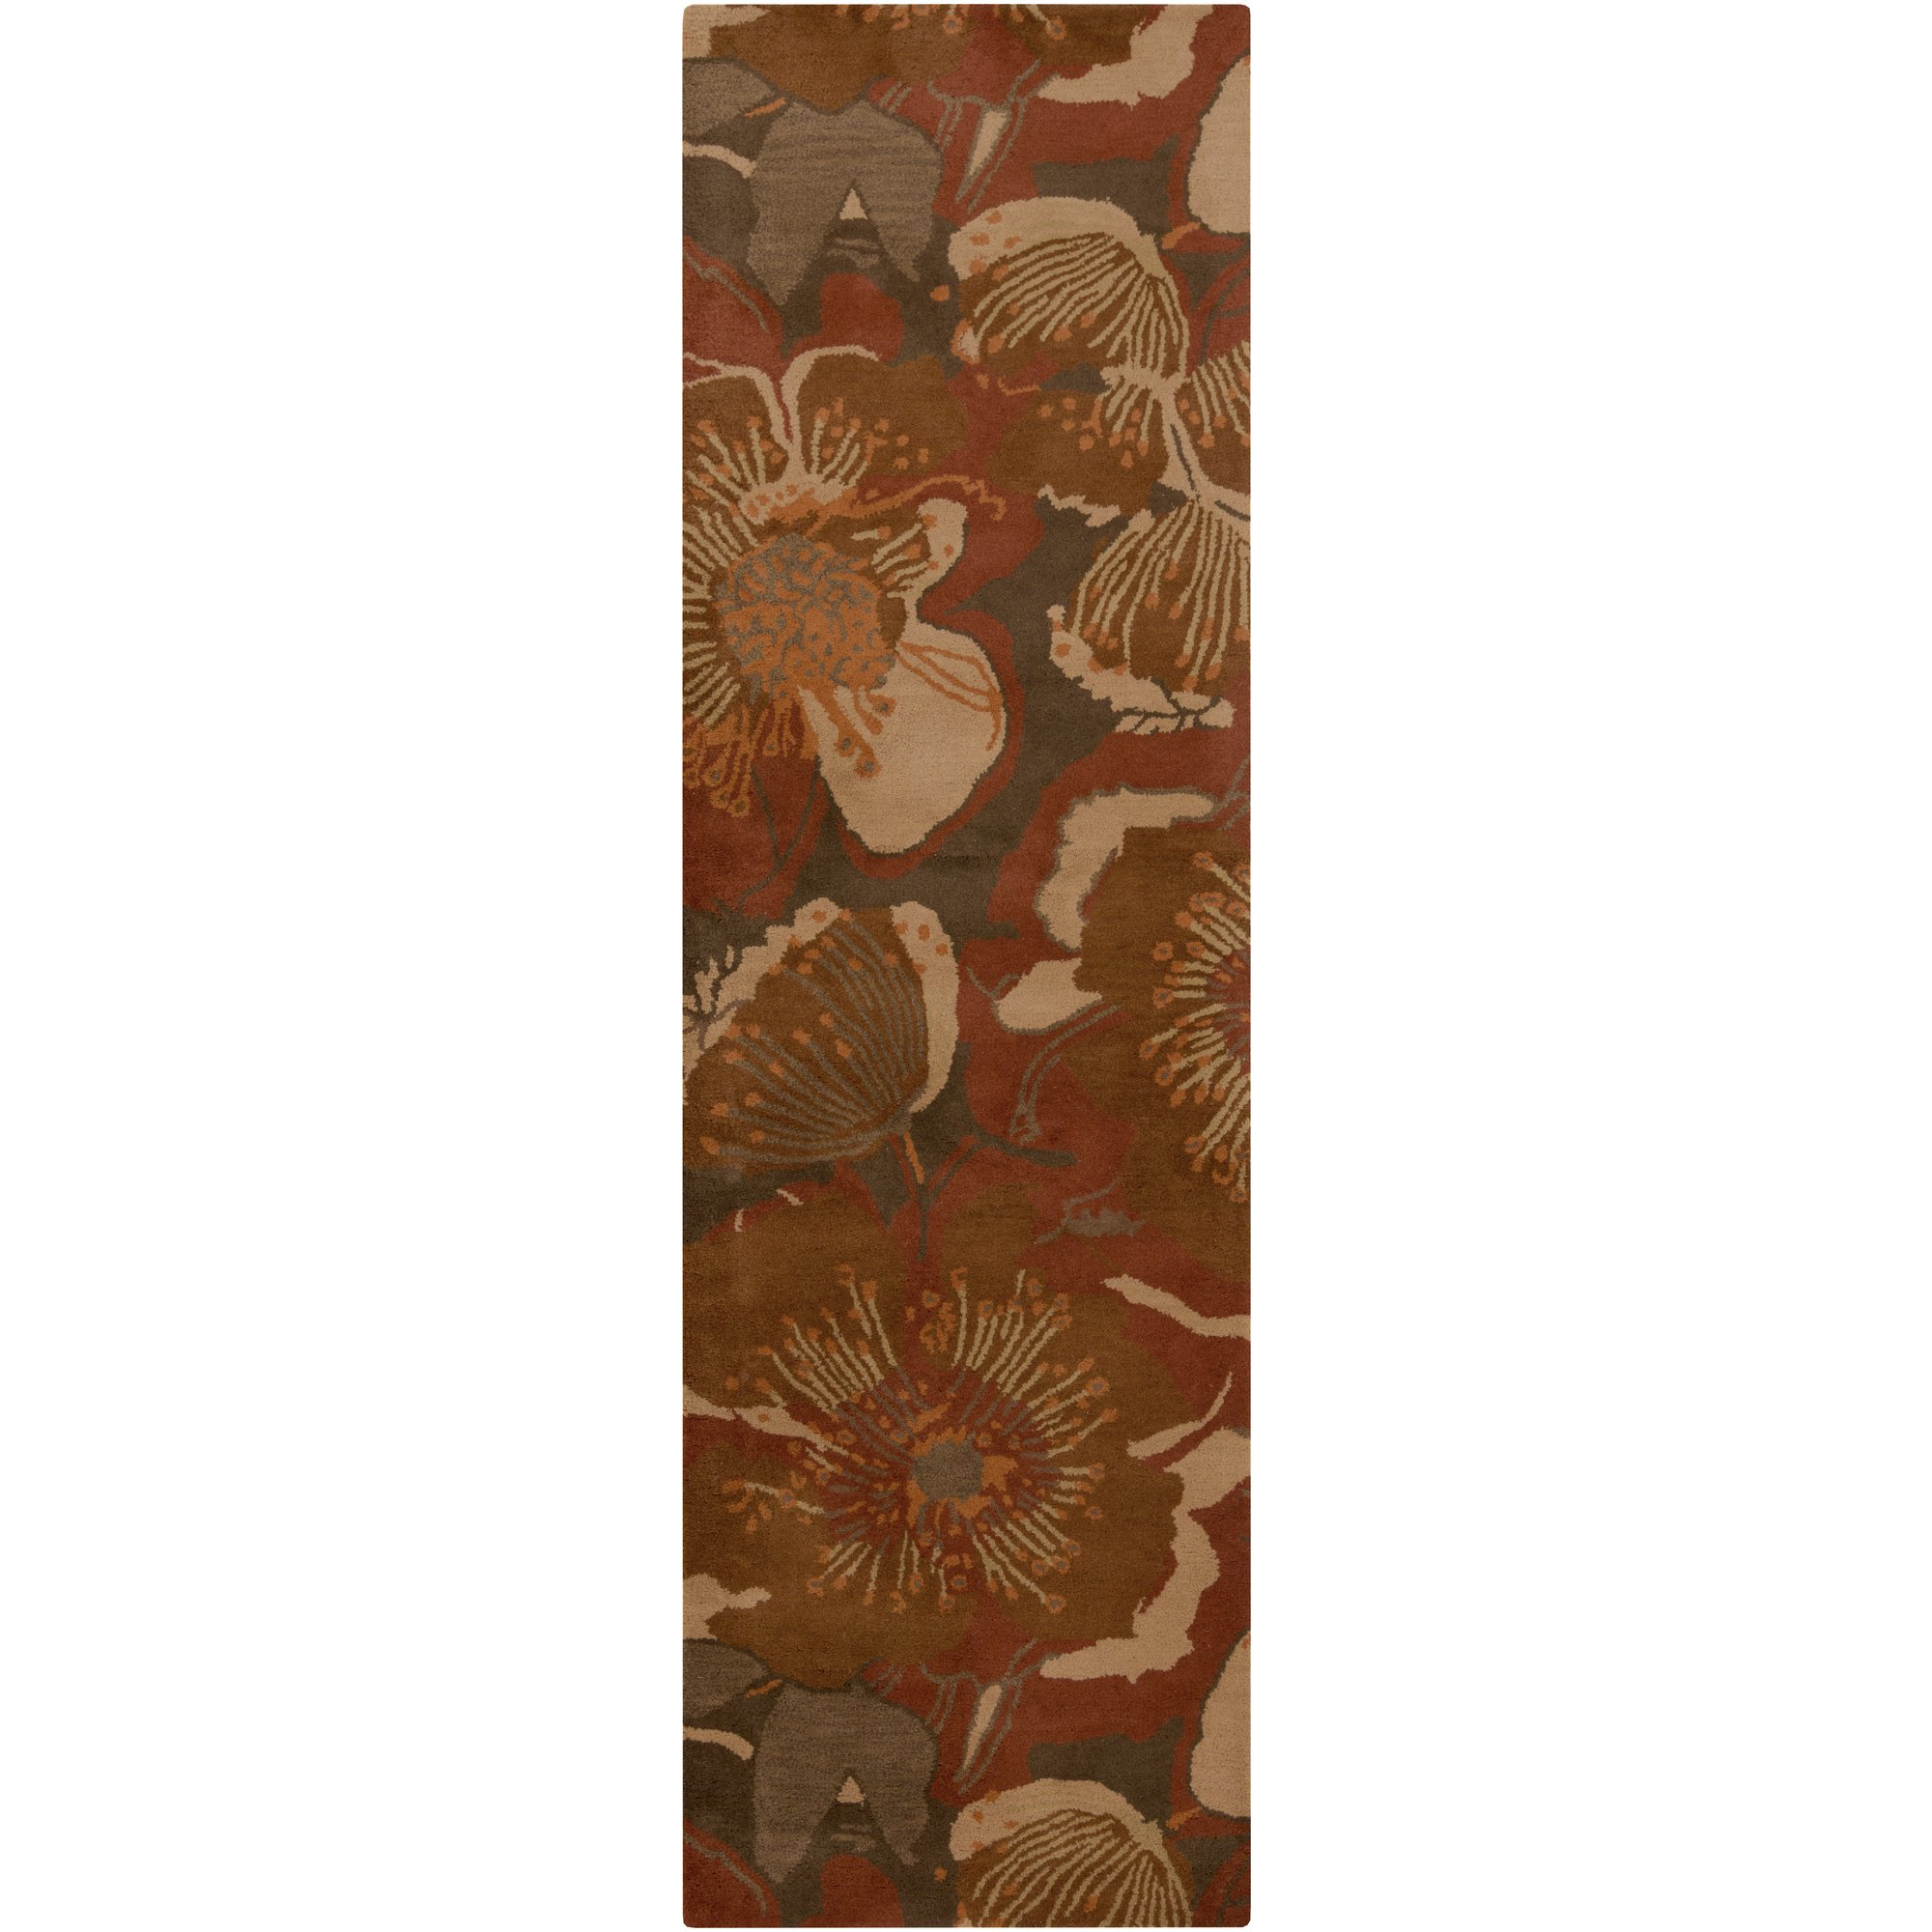 Surya Athena ATH-5102 Transitional Hand Tufted 100% Wool Sepia 2'6'' x 8' Floral Runner